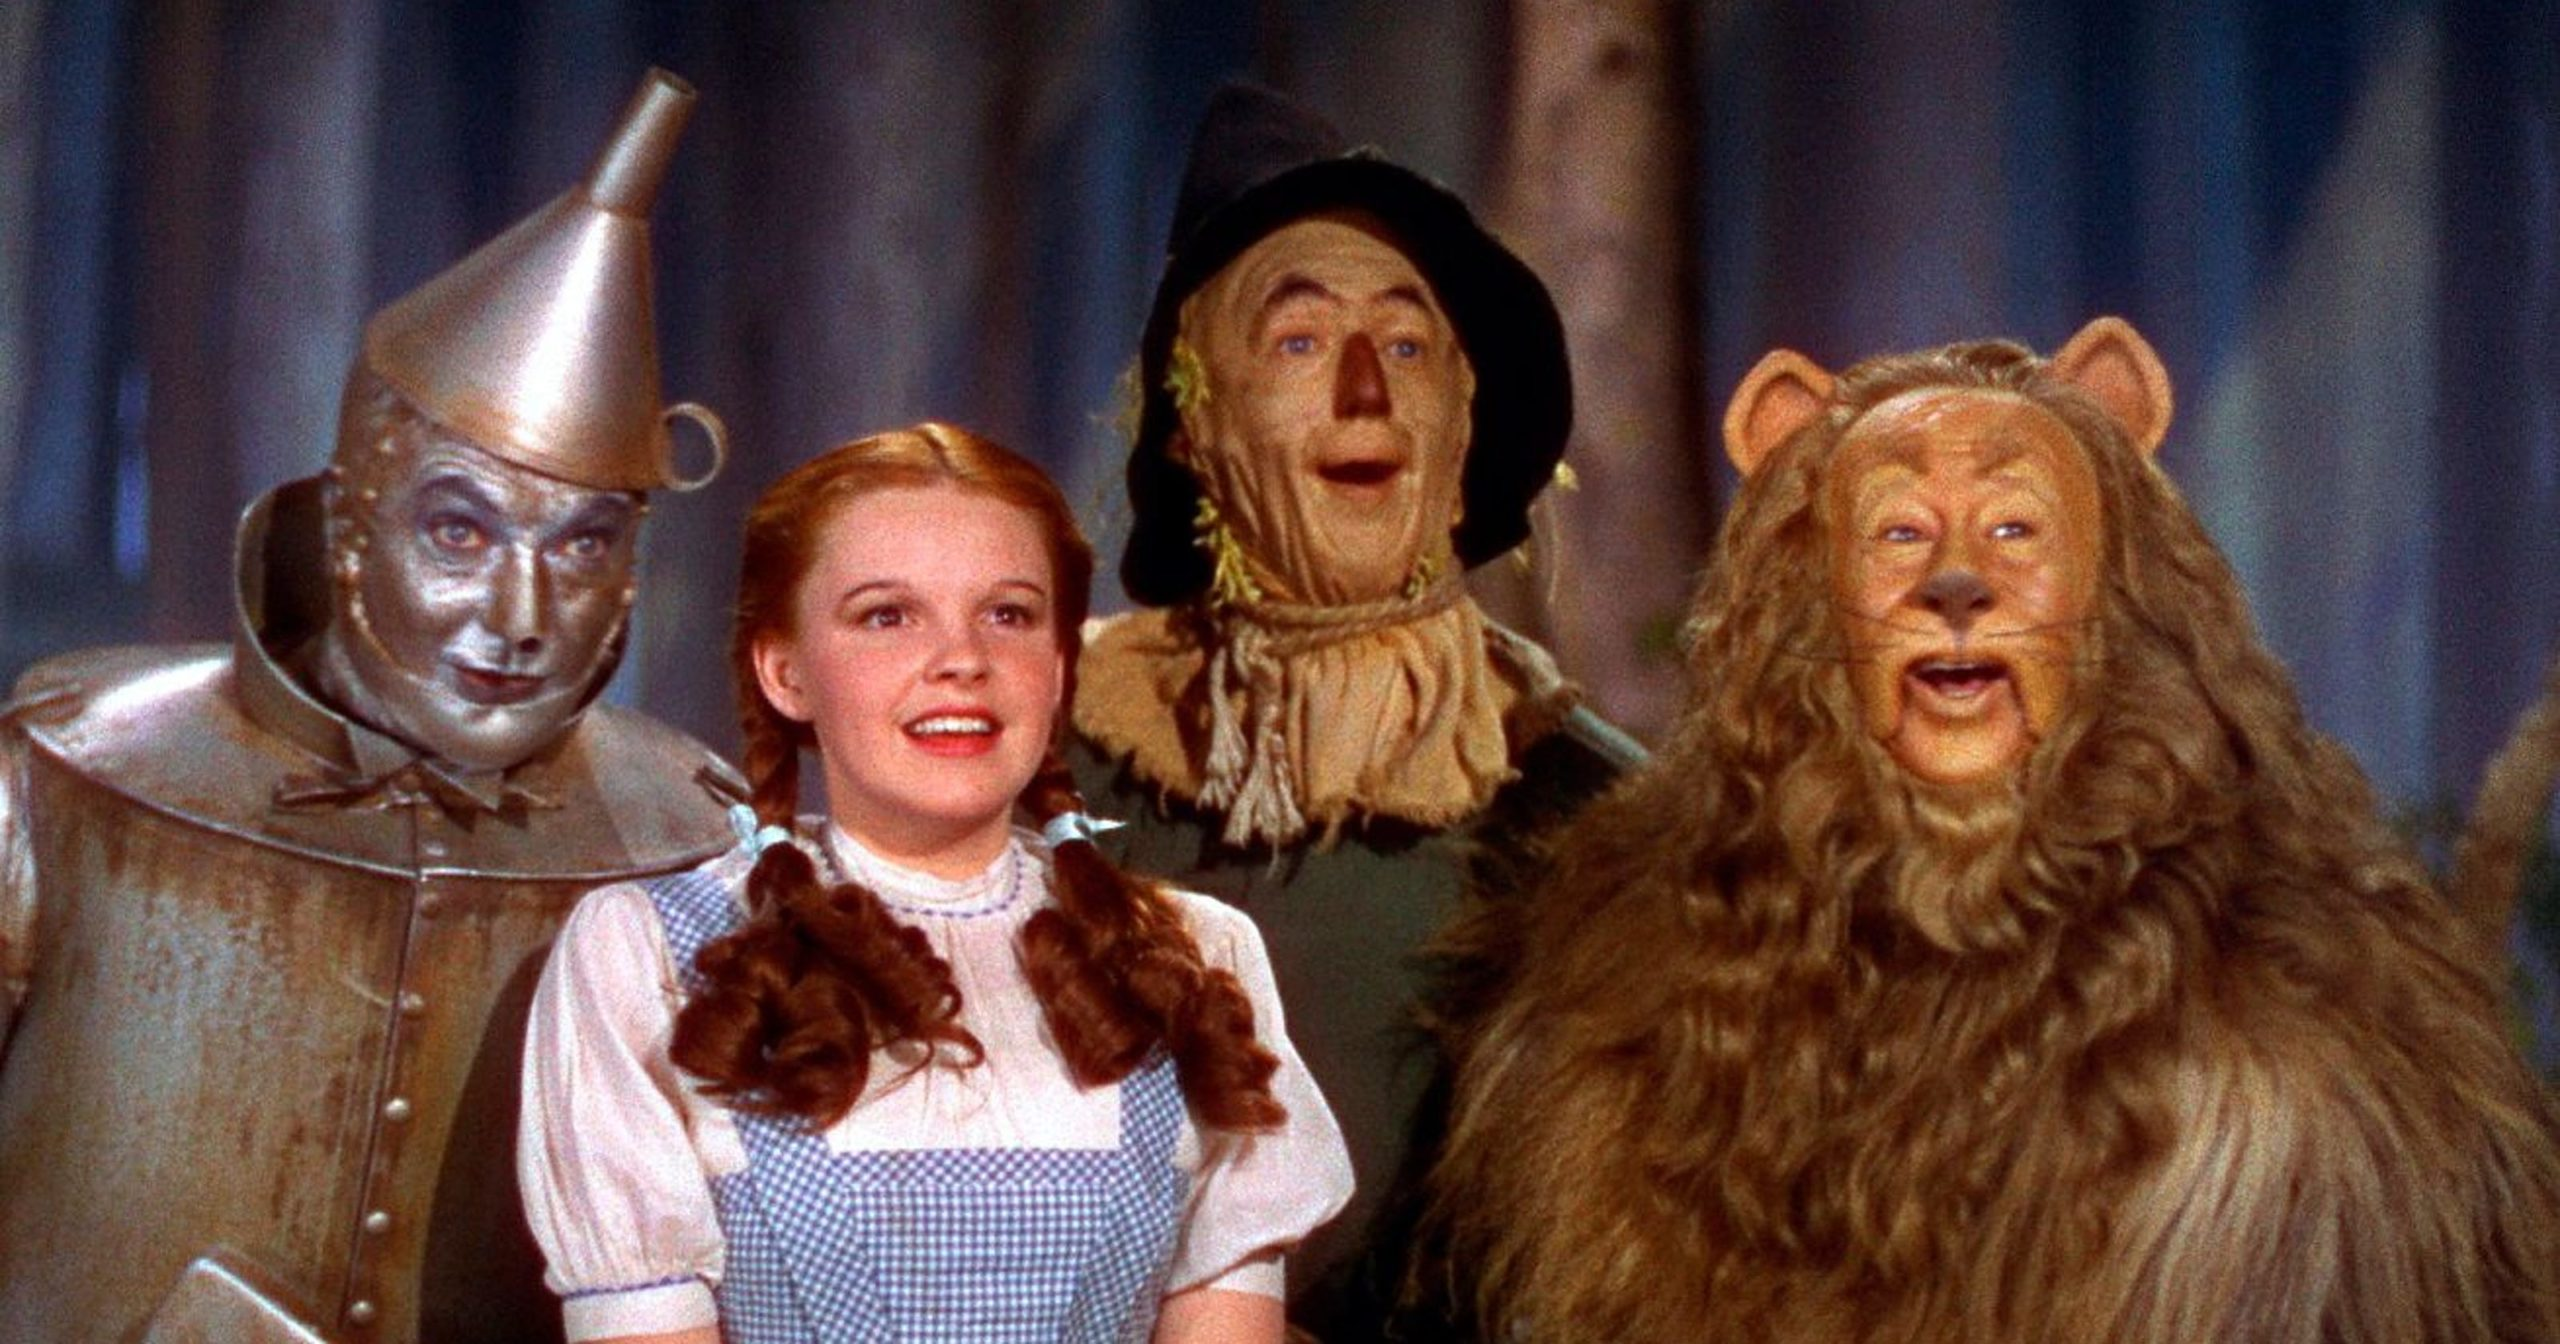 Wizard of Oz Day @ Fairytale Town